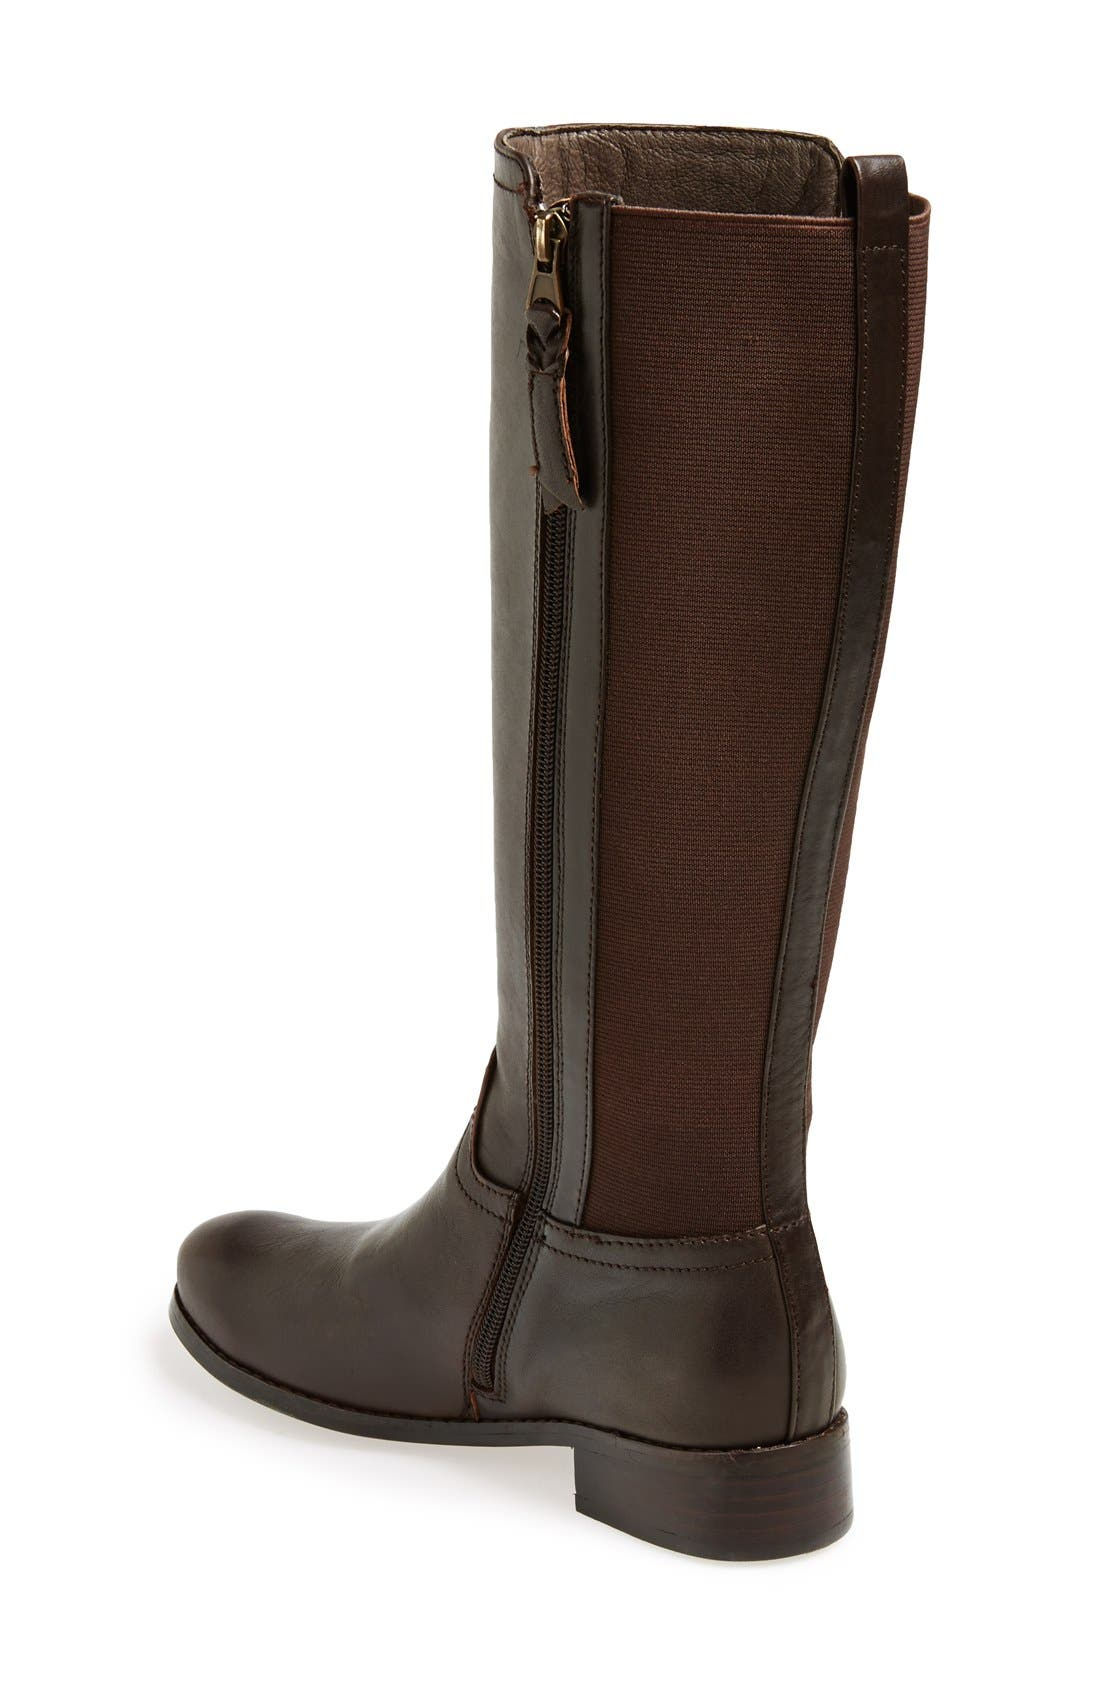 Alternate Image 2  - Trotters 'Signature Lucia' Leather Riding Boot (Women)